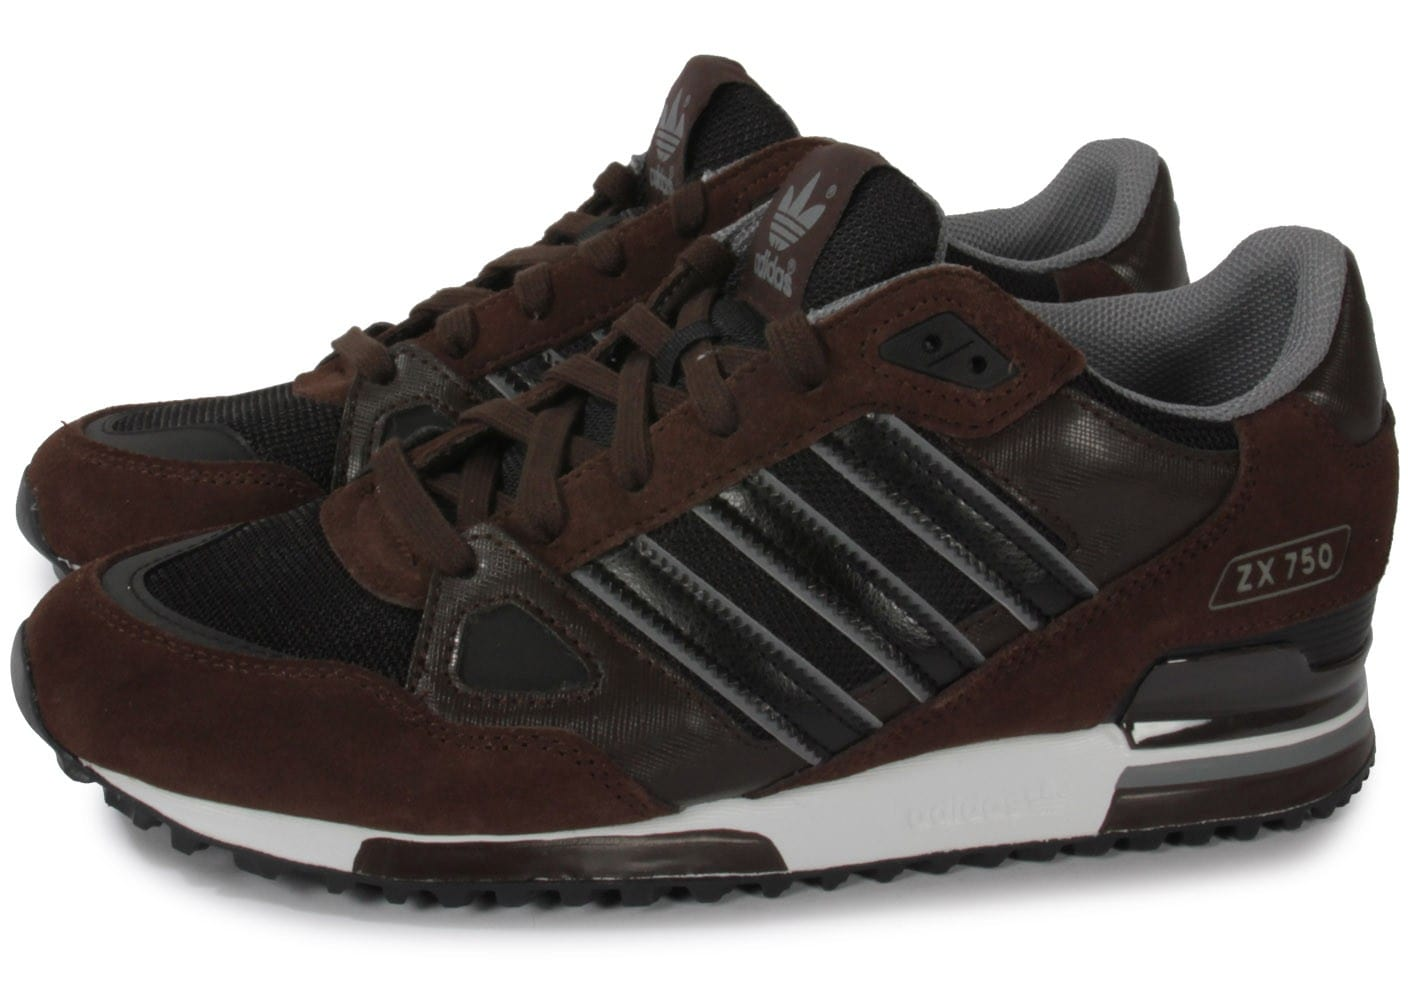 competitive price b8fa0 fc53a promo code for adidas zx 750 t44 b3af9 cb642